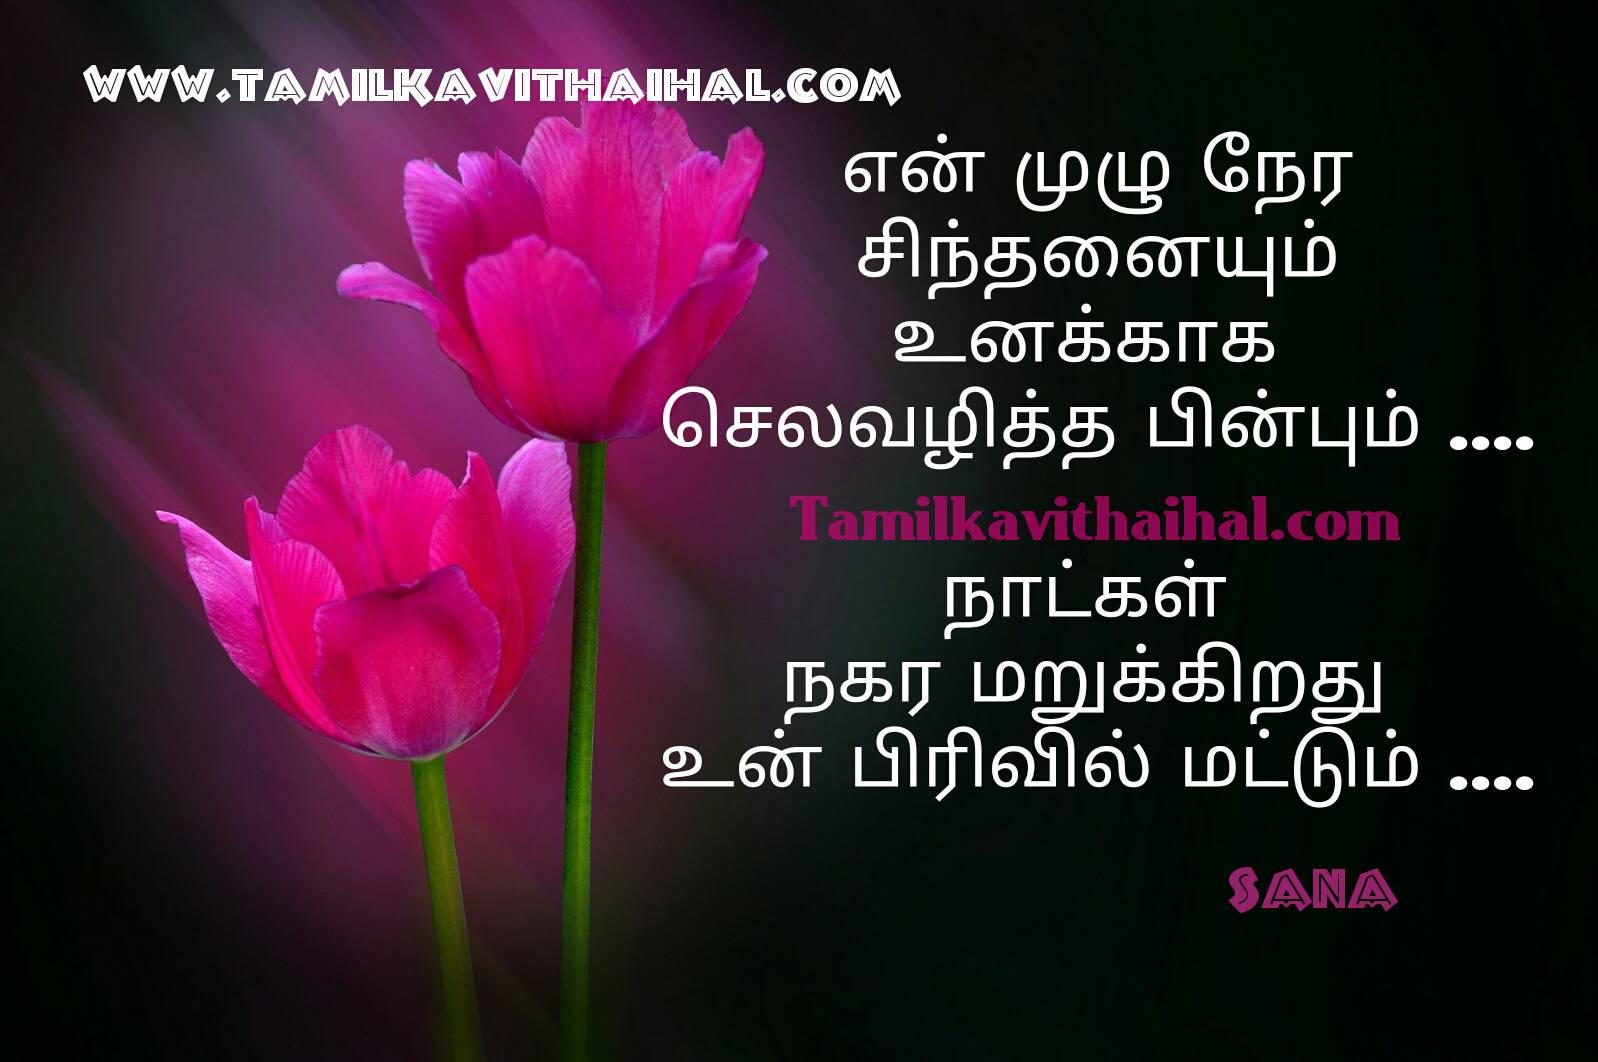 Pain tamil kavithai real love quotes for whatsapp dp image sana download